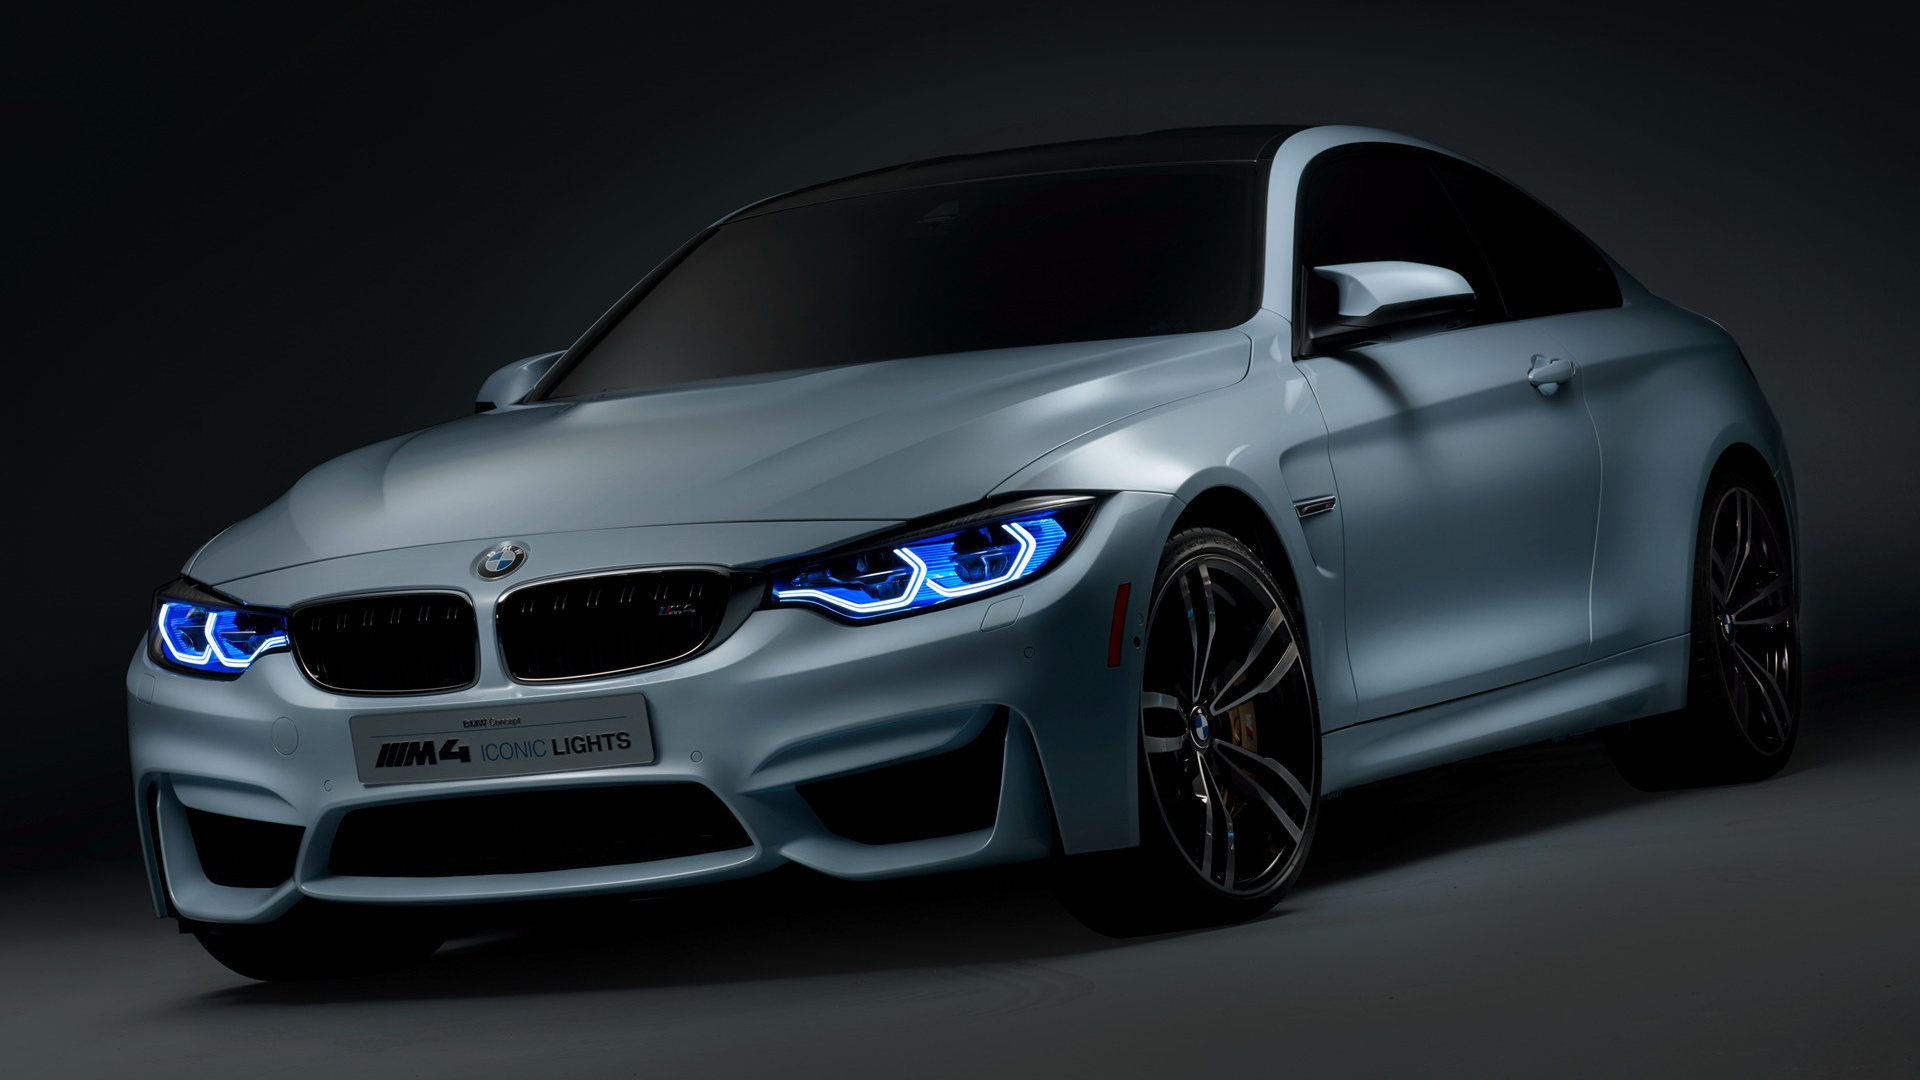 2015 Bmw Concept M4 Iconic Lights Wallpapers And Hd